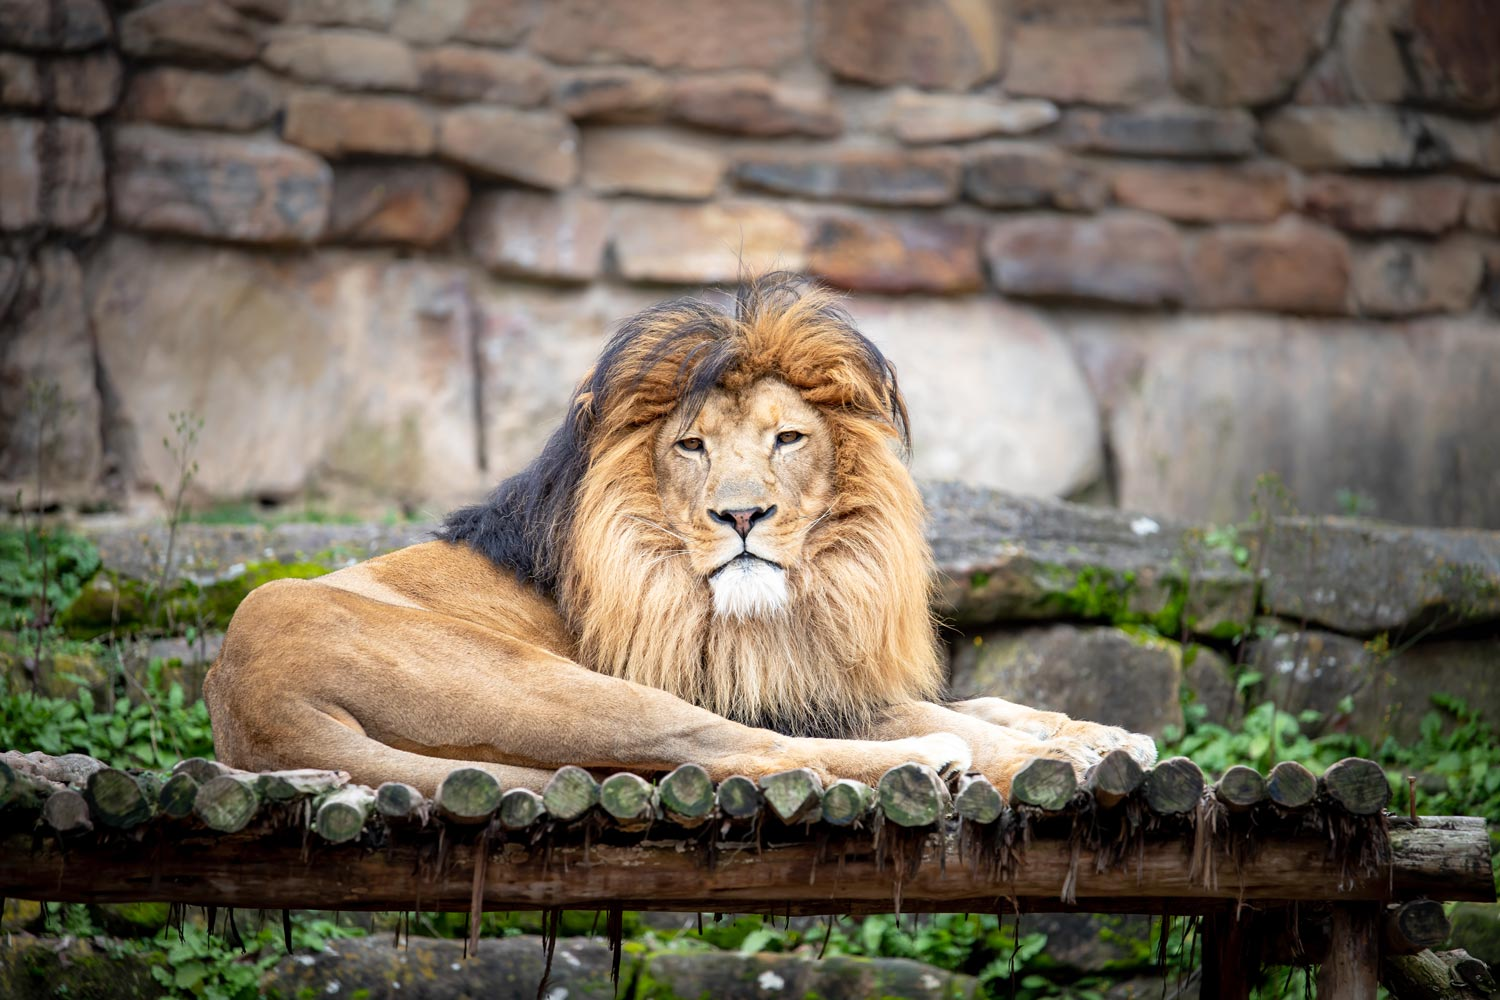 Zoo animals also affected by climate change